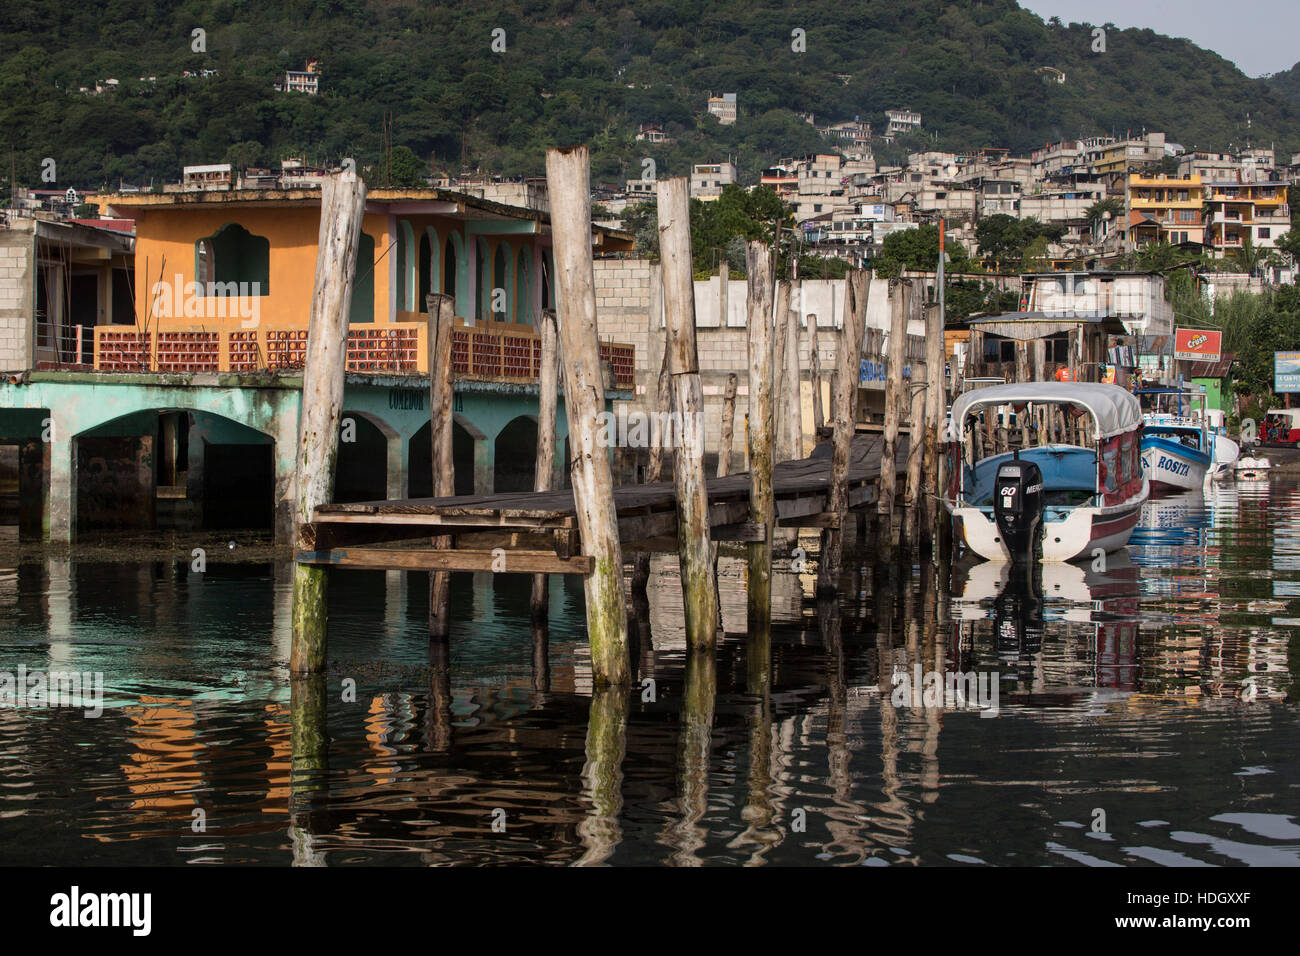 Since 2009 Lake Atitlan in Guatemala has risen more than 30 feet, flooding farmlands and shoreline buildings of - Stock Image